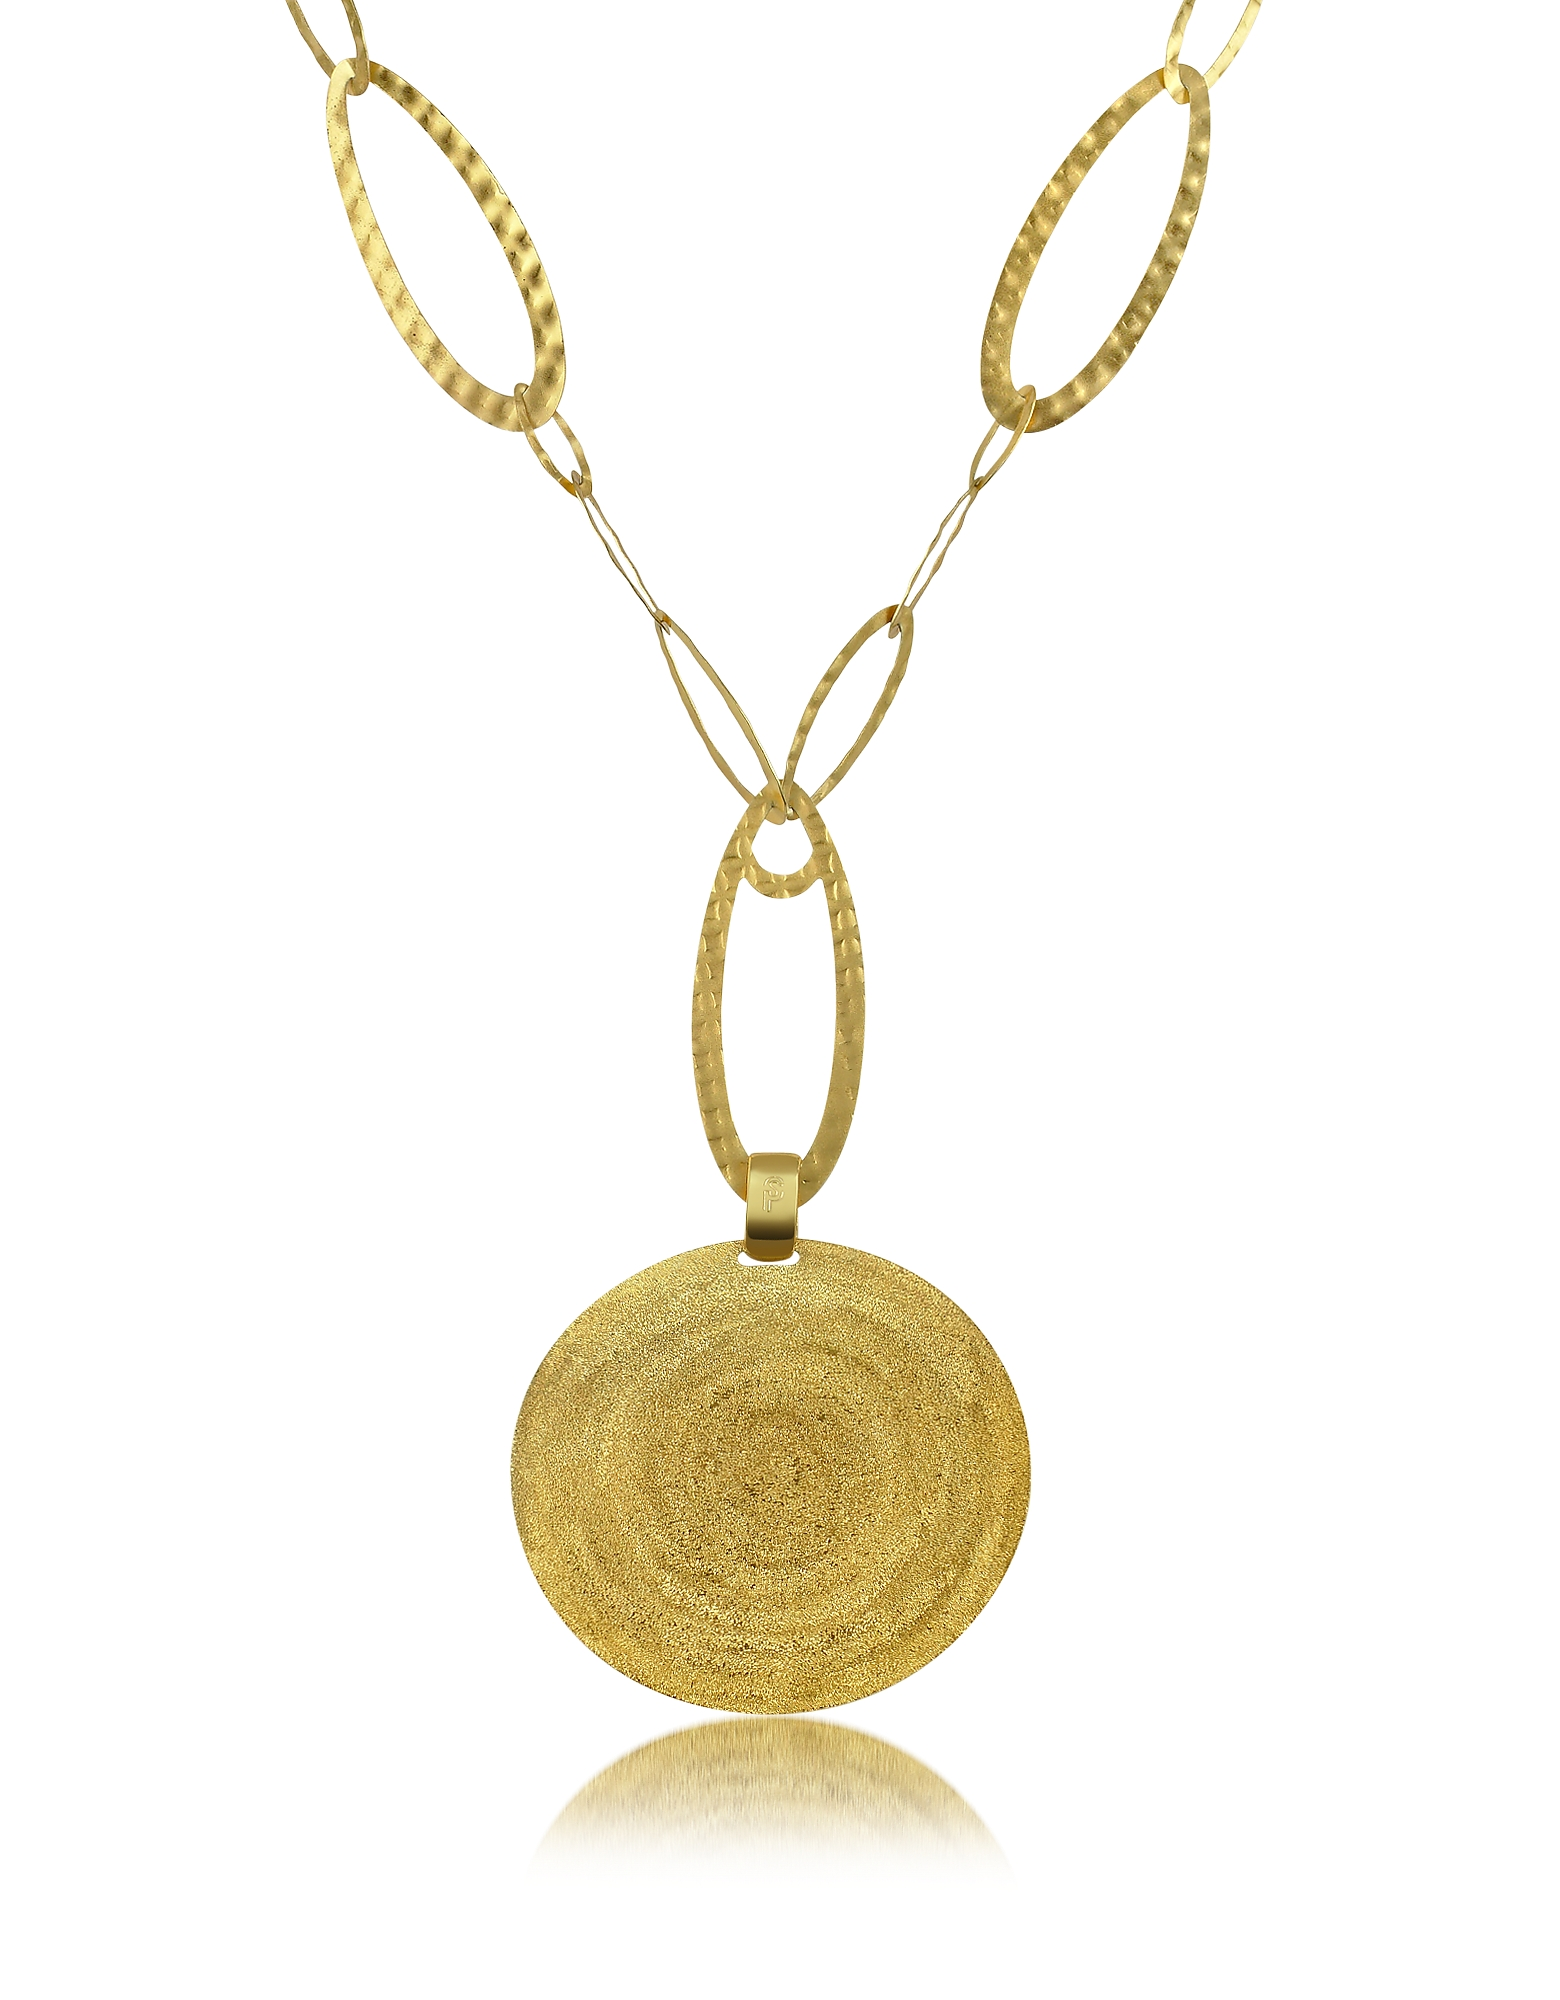 Stefano Patriarchi Necklaces, Golden Silver Etched Round Pendant Chain Necklace